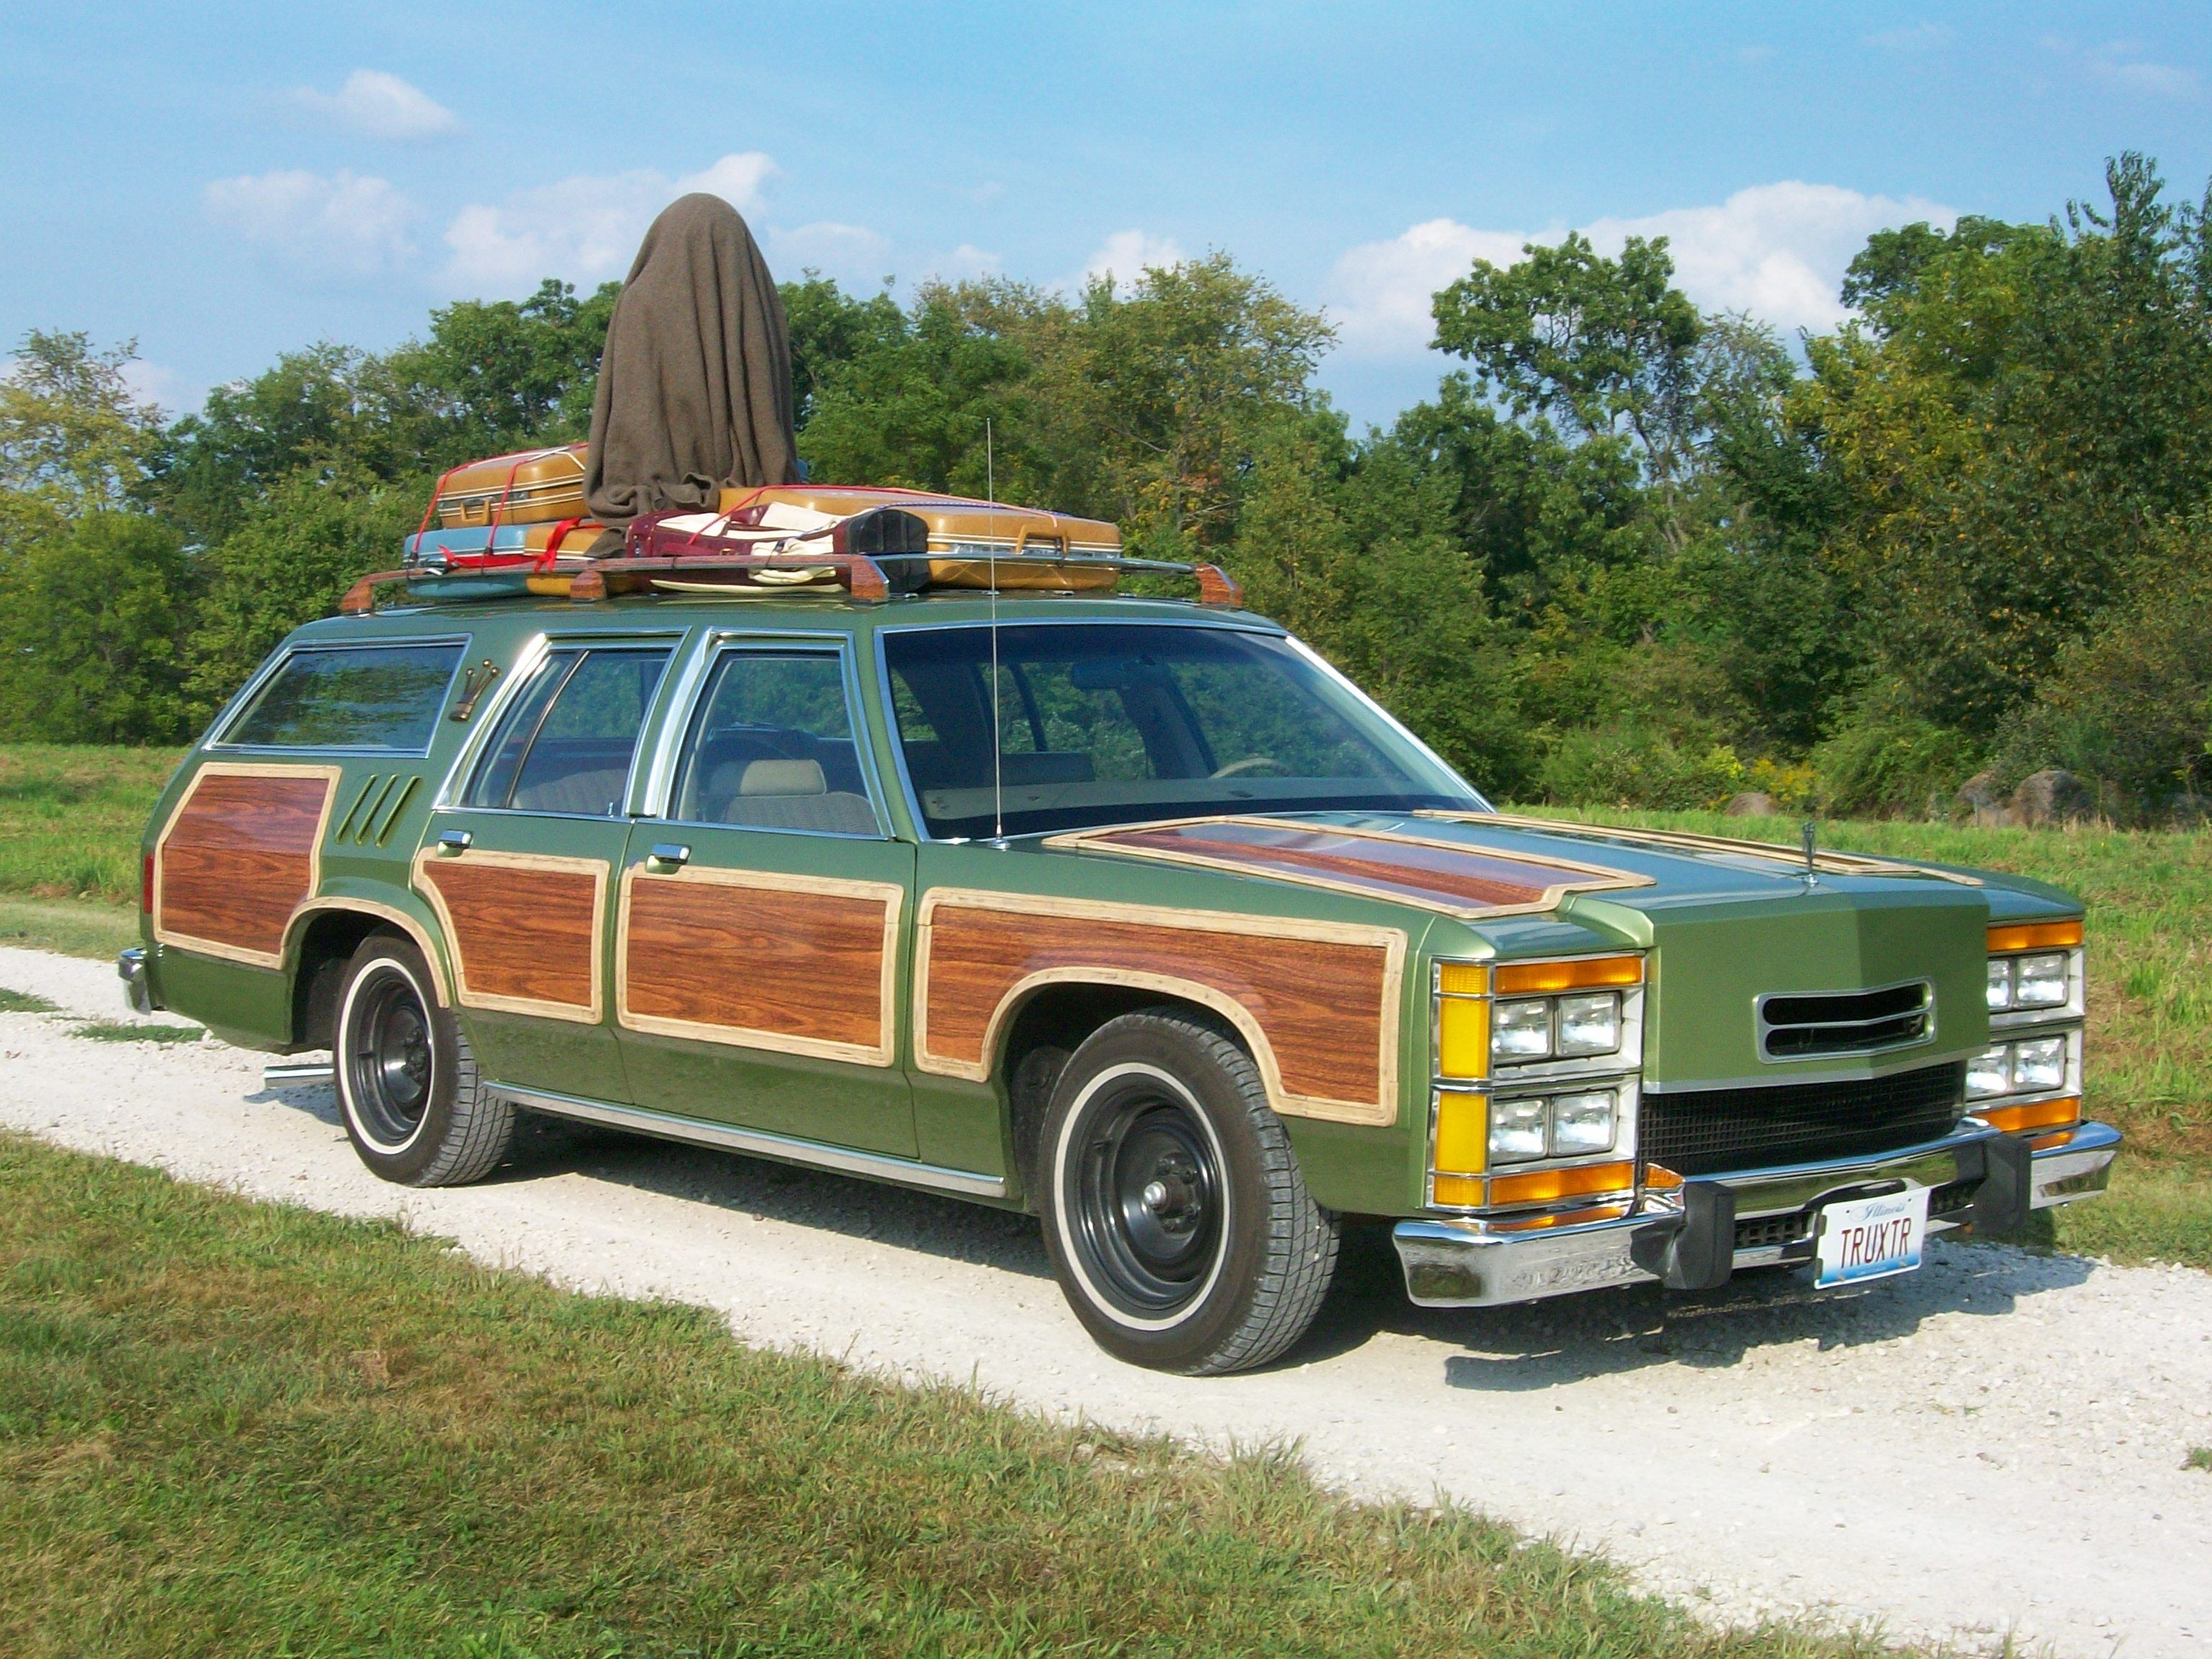 The Family Truckster VACATION Movie Car CHEVY CHASE MOVIE CARS